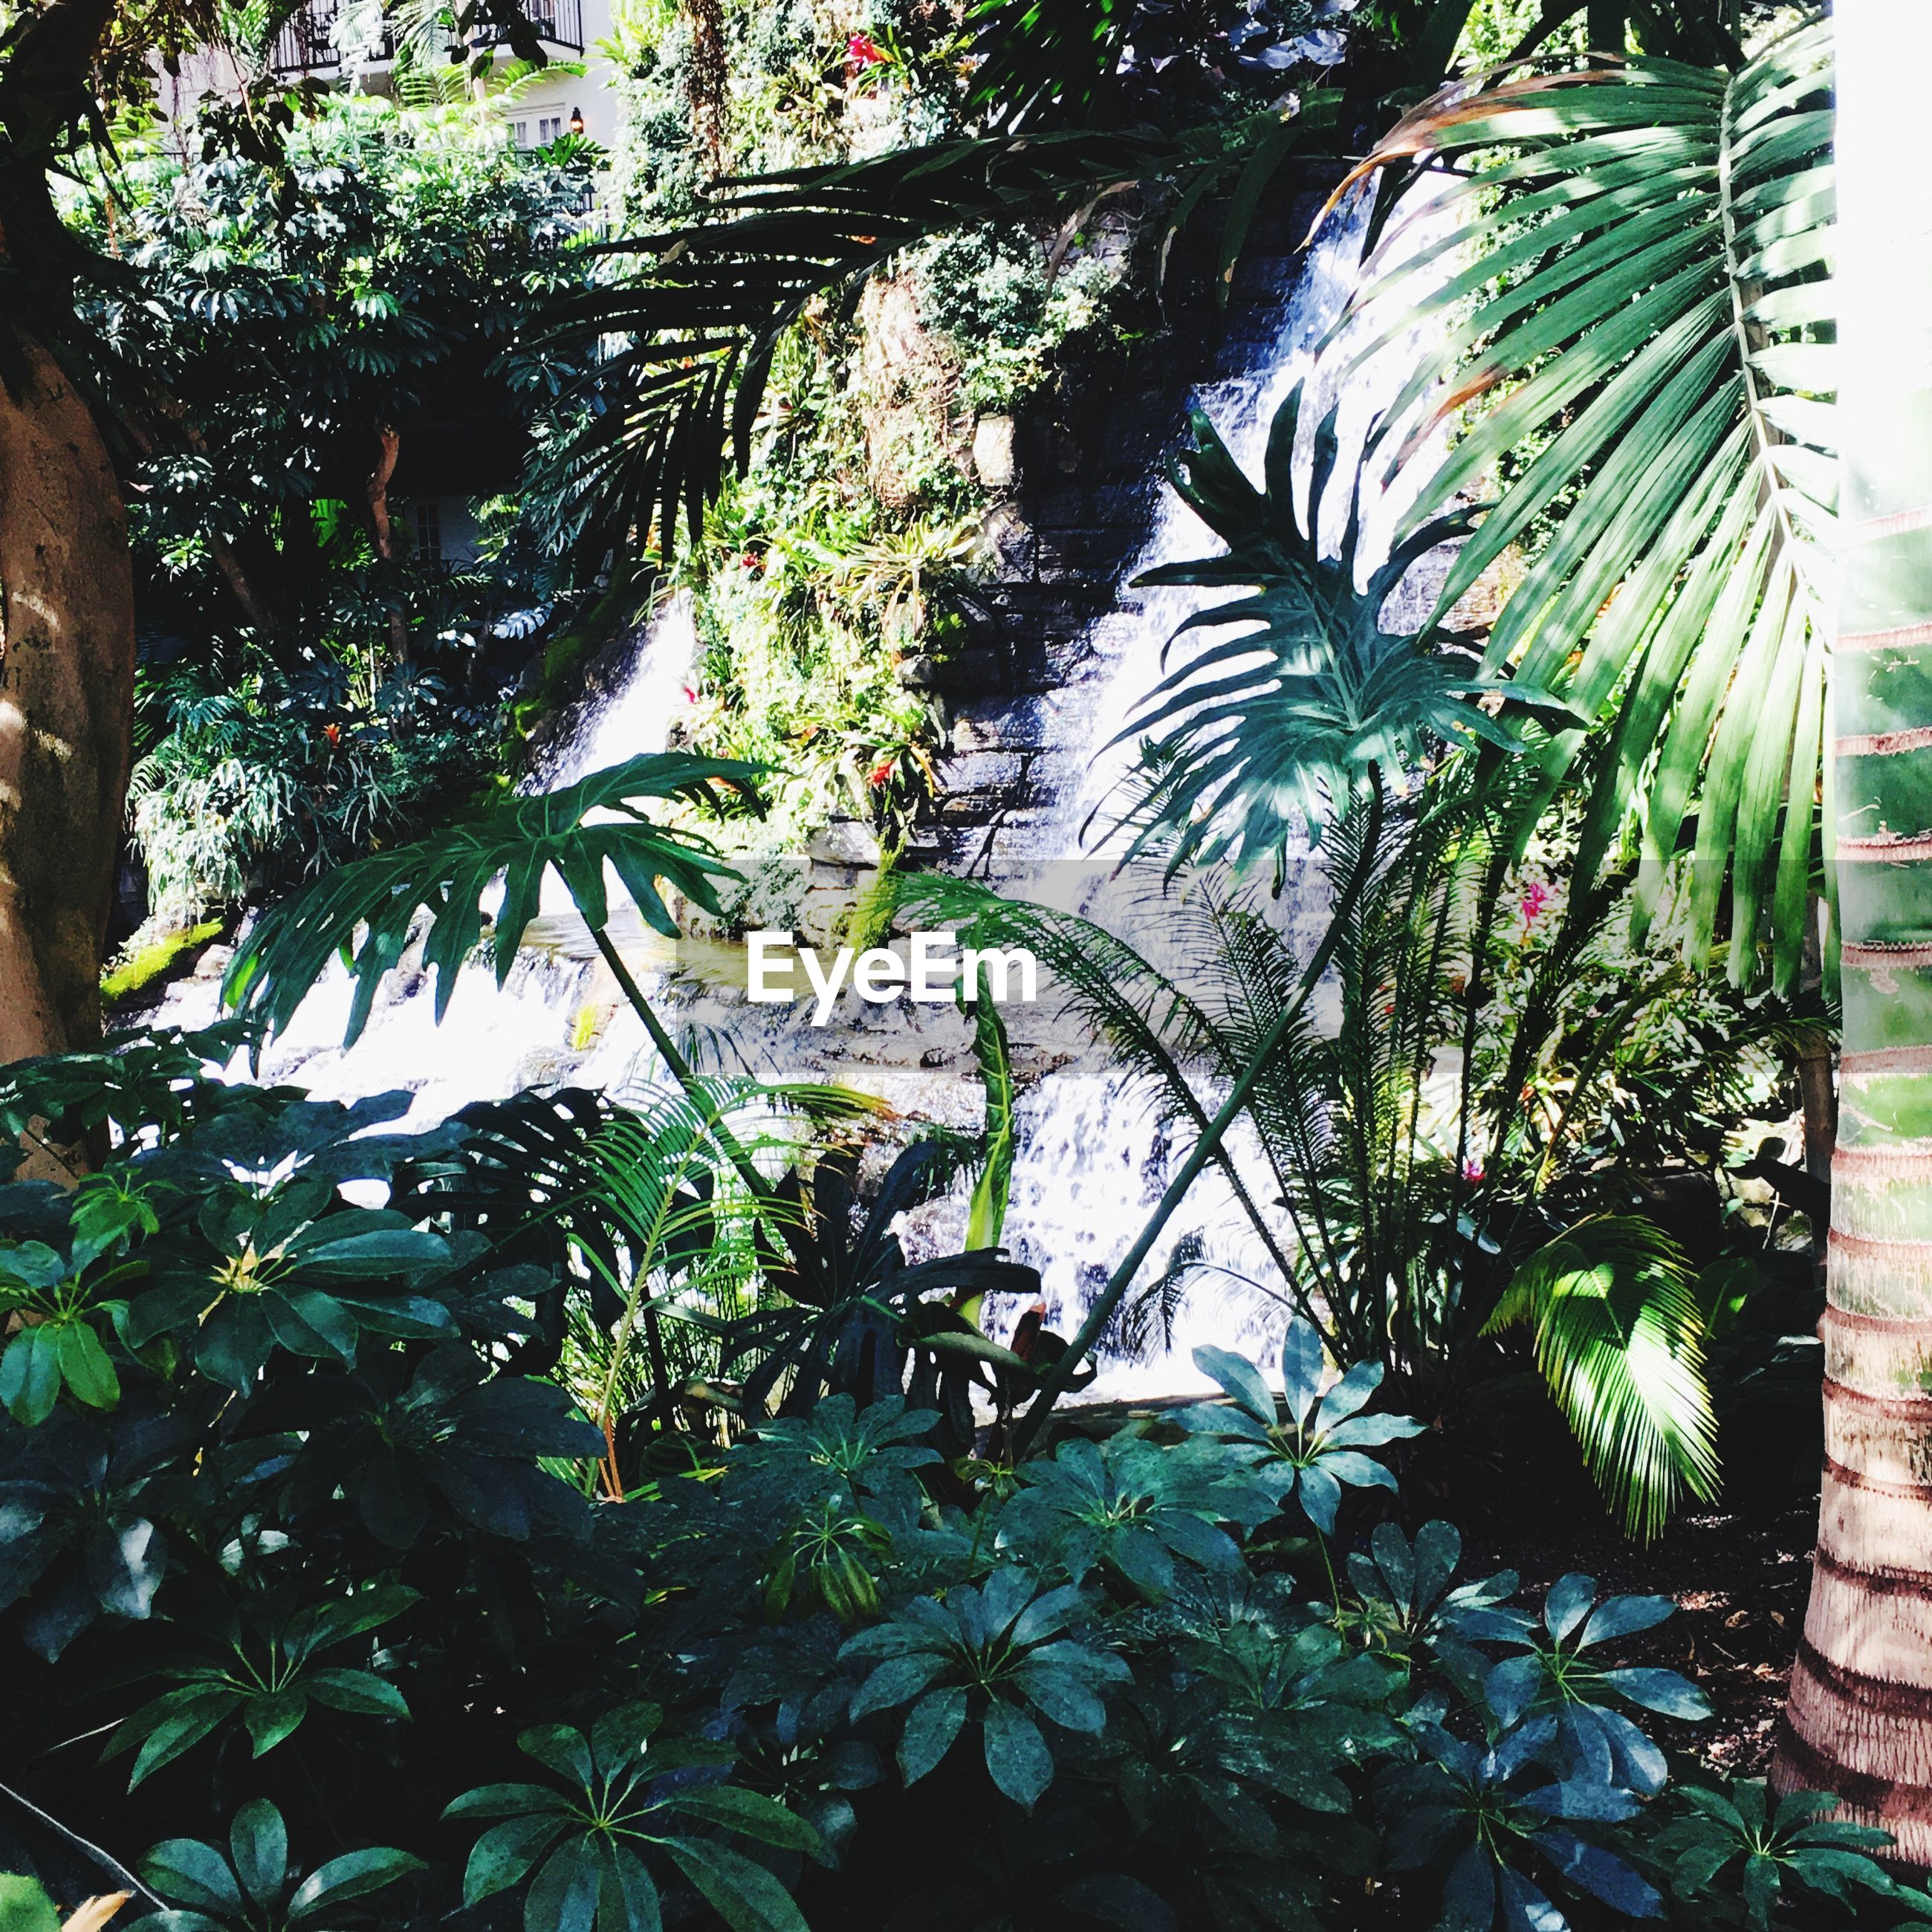 plant, growth, tree, leaf, plant part, day, green color, nature, no people, beauty in nature, outdoors, sunlight, tranquility, close-up, palm tree, green, foliage, lush foliage, tropical climate, land